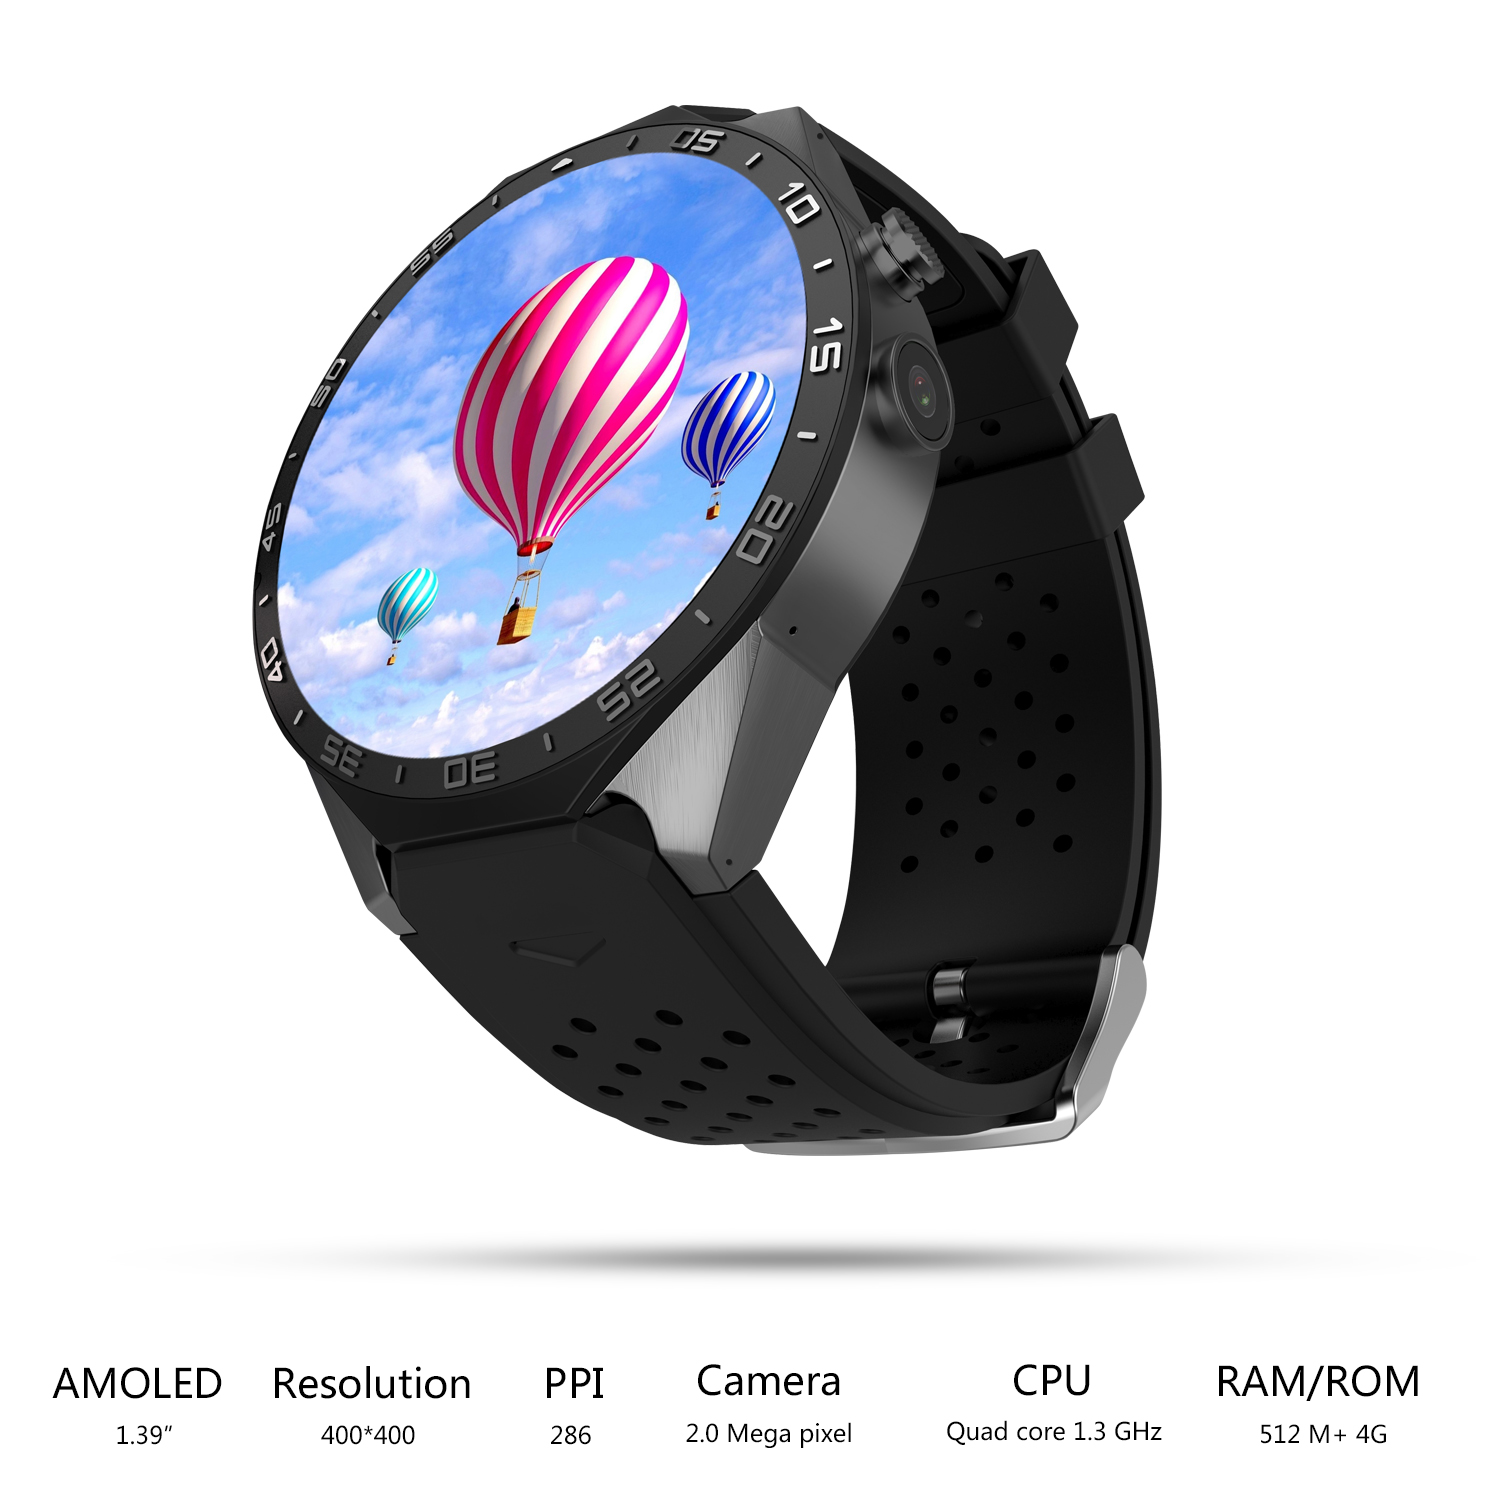 otex 2017 Hot Kw88 android 5.1 OS Smart watch 1.39 inch 400*400 SmartWatch phone support 3G wifi nano SIM WCDMA Heart Rate kw88 smart watch android 5 1 os quad core 400 400 smartwatch mtk6580 support 3g wifi nano sim card gps heart rate wristwatch